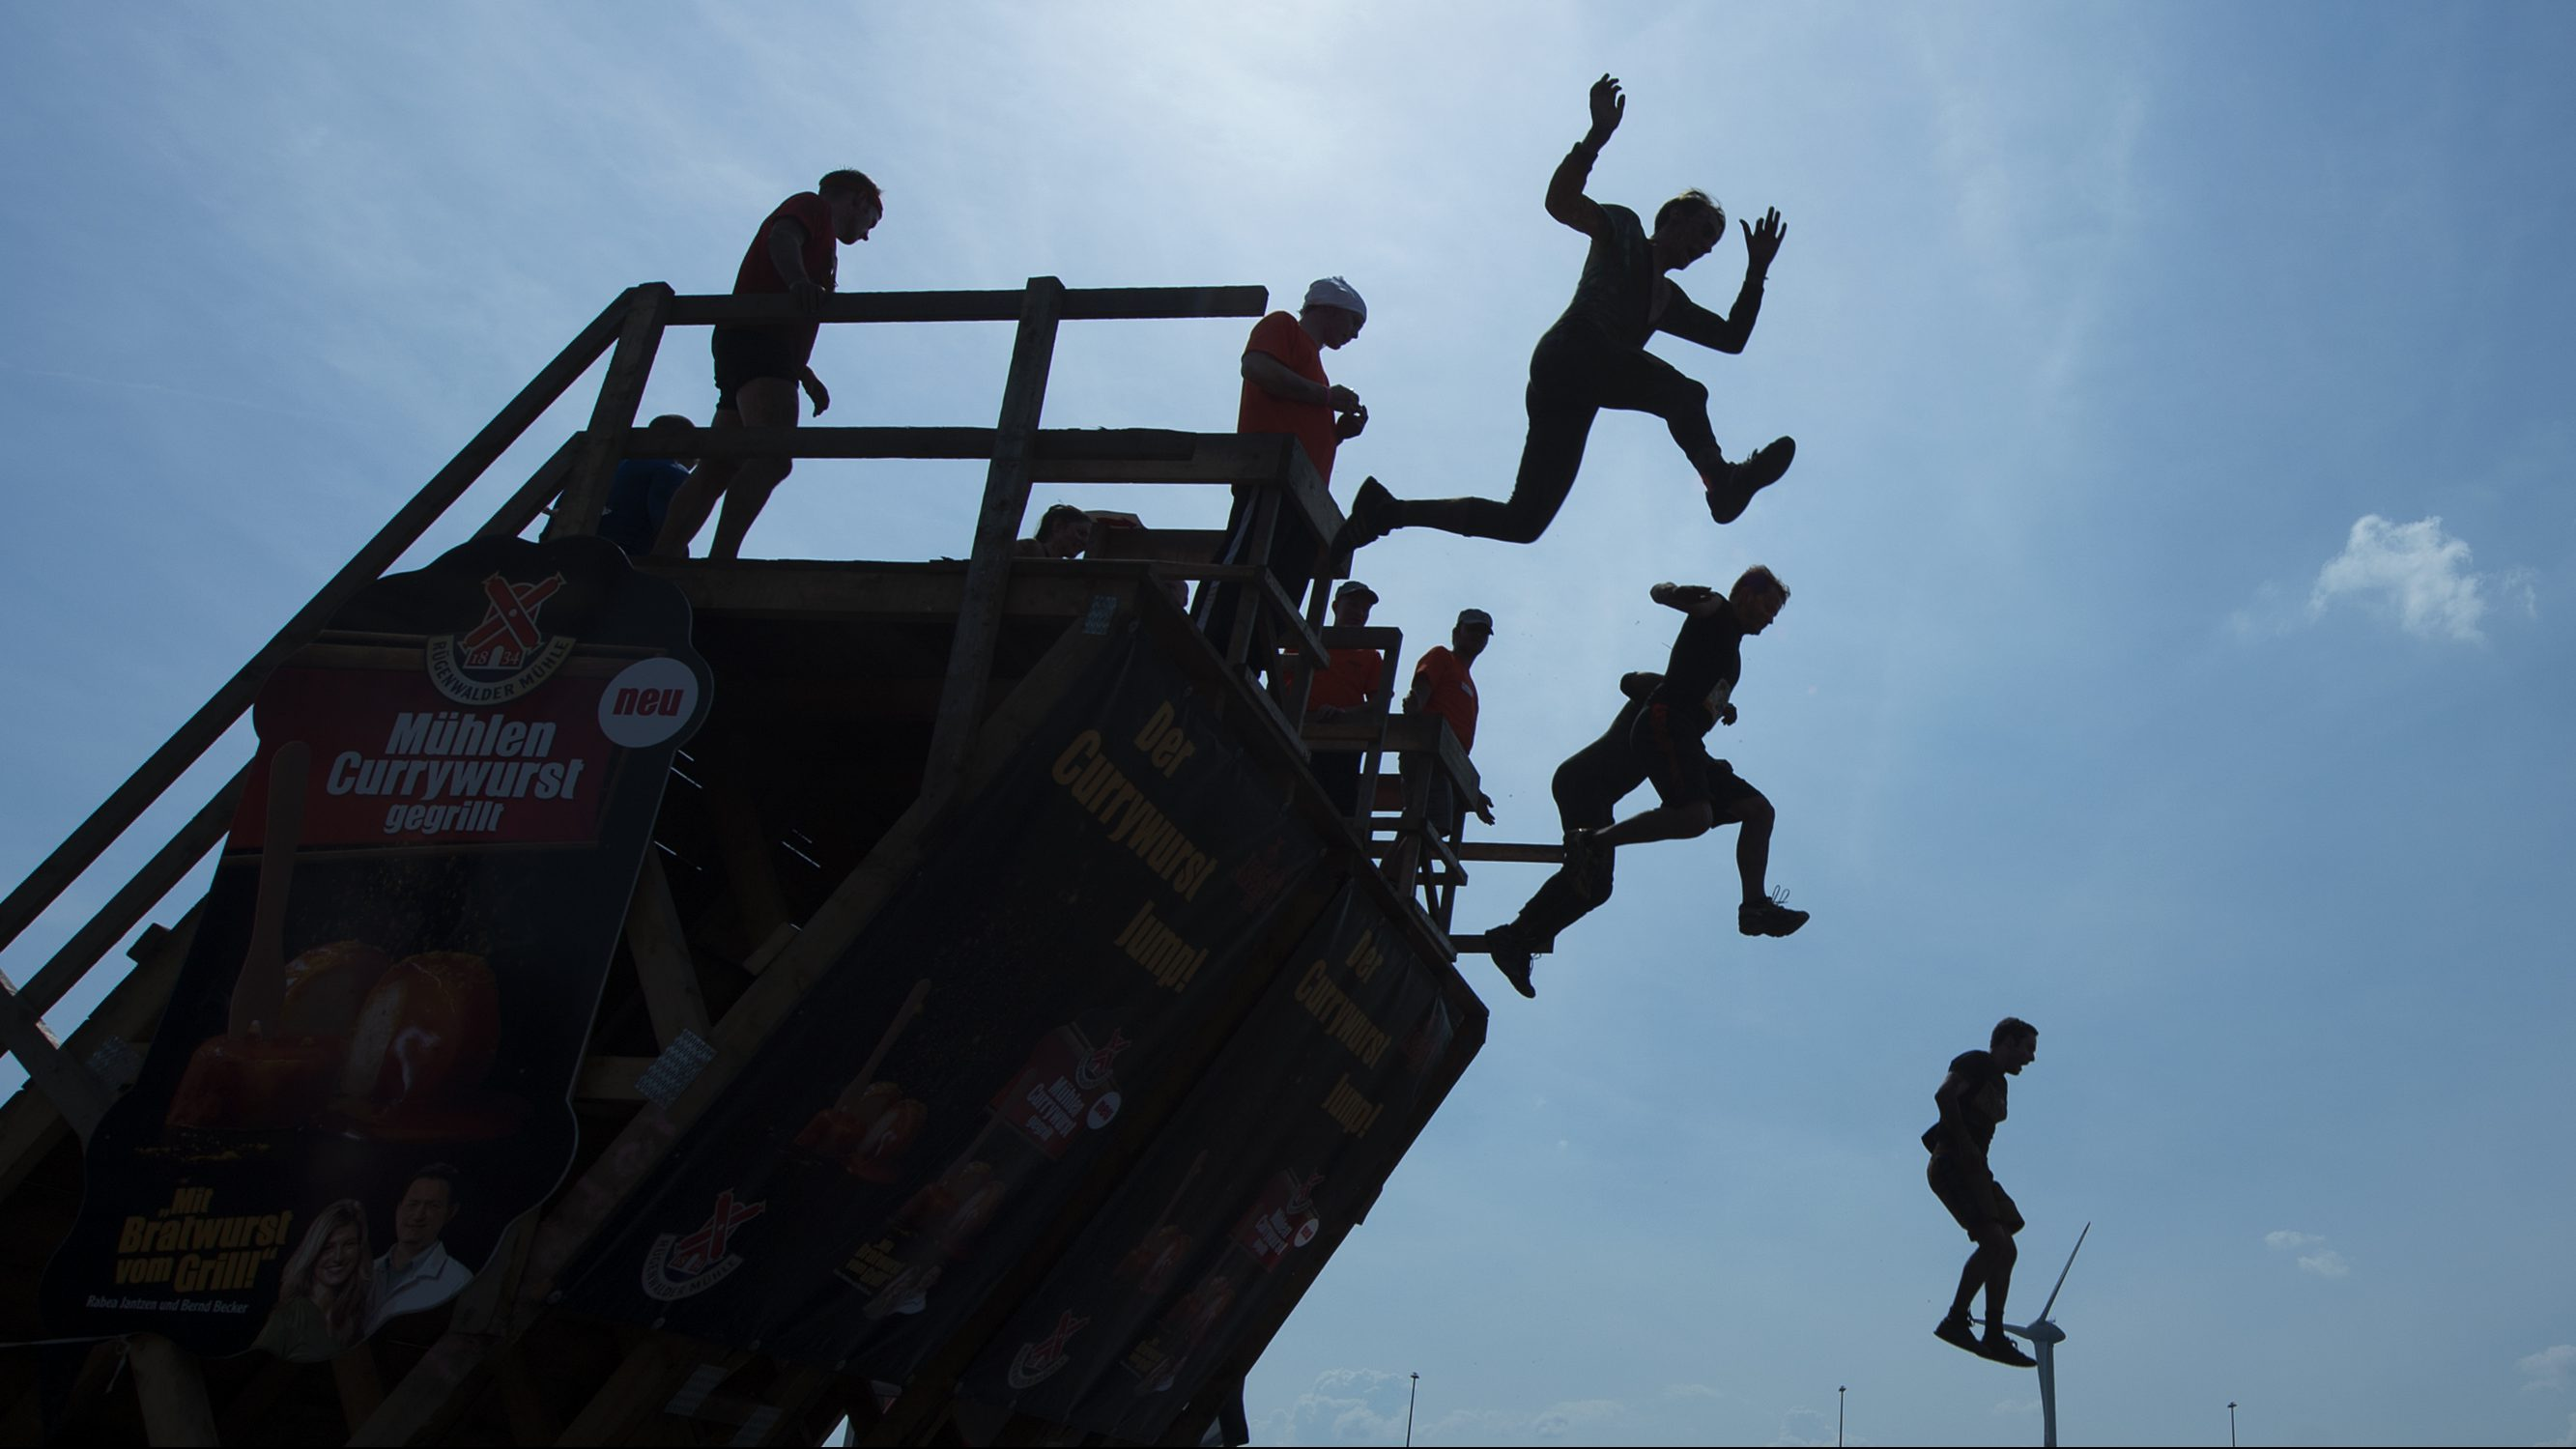 People compete at the Tough Mudder event in Klettwitz, Germany, Saturday, July 26, 2014.  Tough Mudder is a 10-12 miles obstacle course designed to test all-around strength, teamwork, and mental strength.  (AP Photo/Jens Meyer)